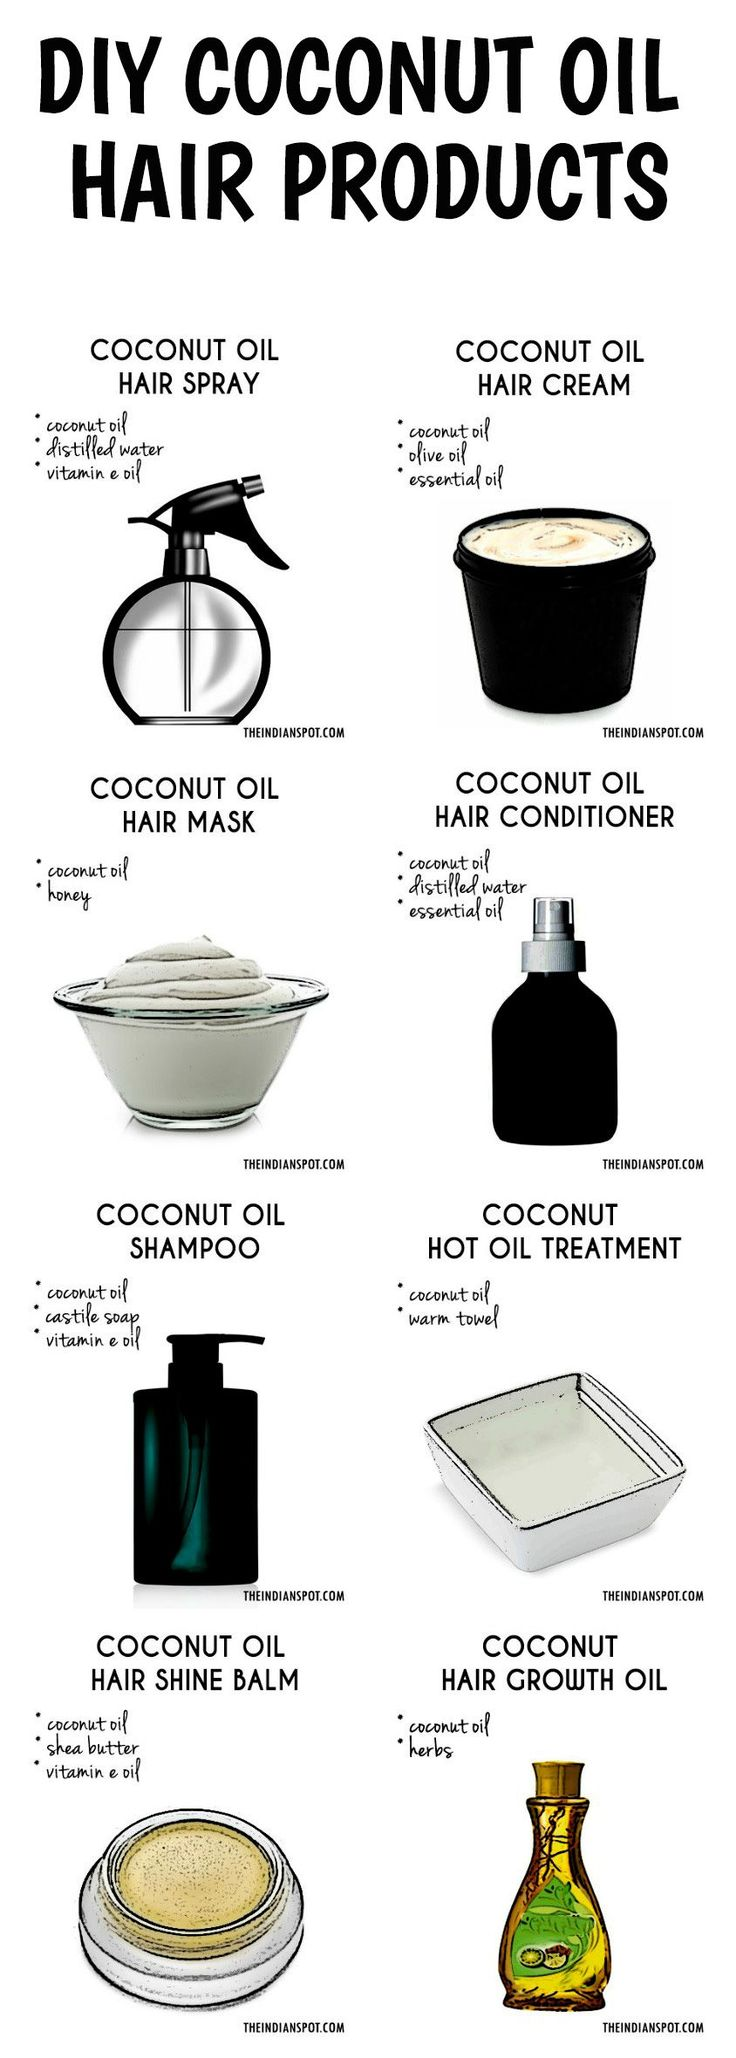 DIY Coconut Oil Hair Products                                                                                                                                                                                 More